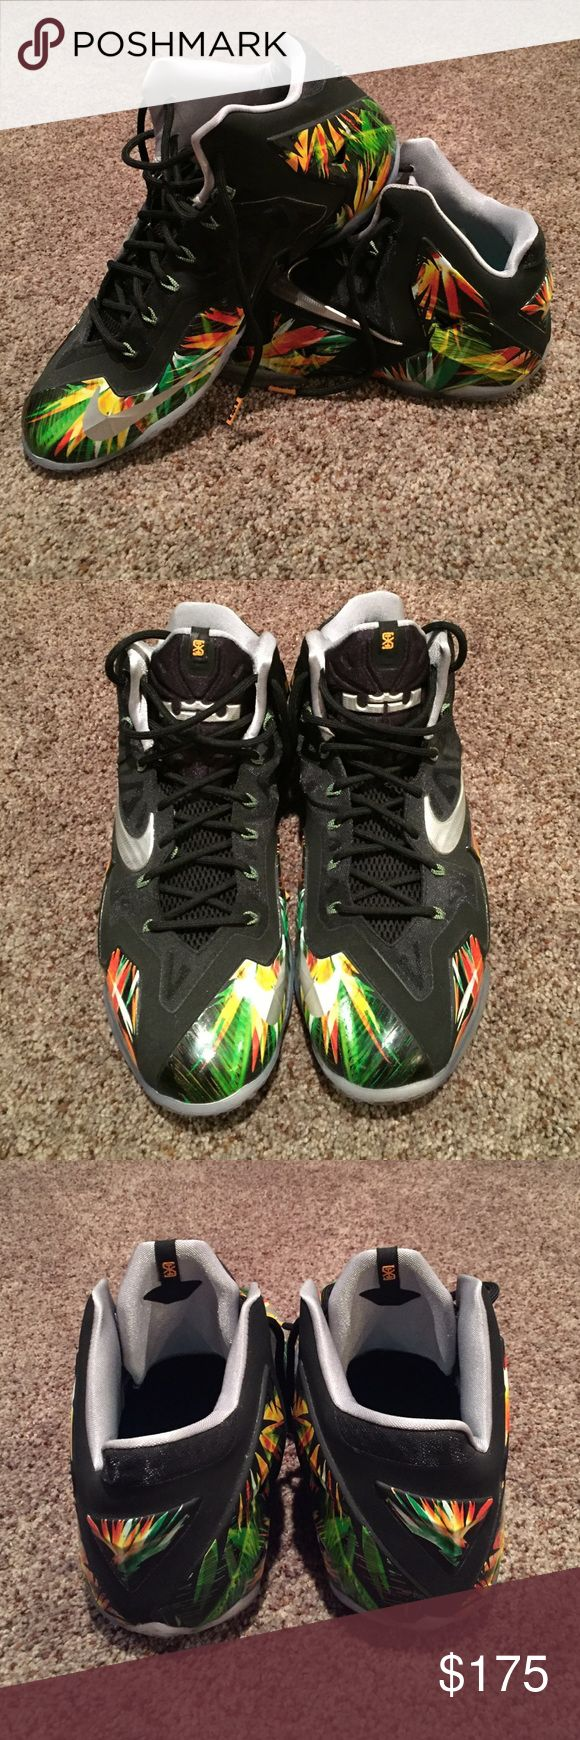 Nike LeBron 11 Floral Shoe Size 13 Nike LeBron 11 Floral Shoe Size 13. Worn One Time. Excellent Condition. Nike Shoes Sneakers